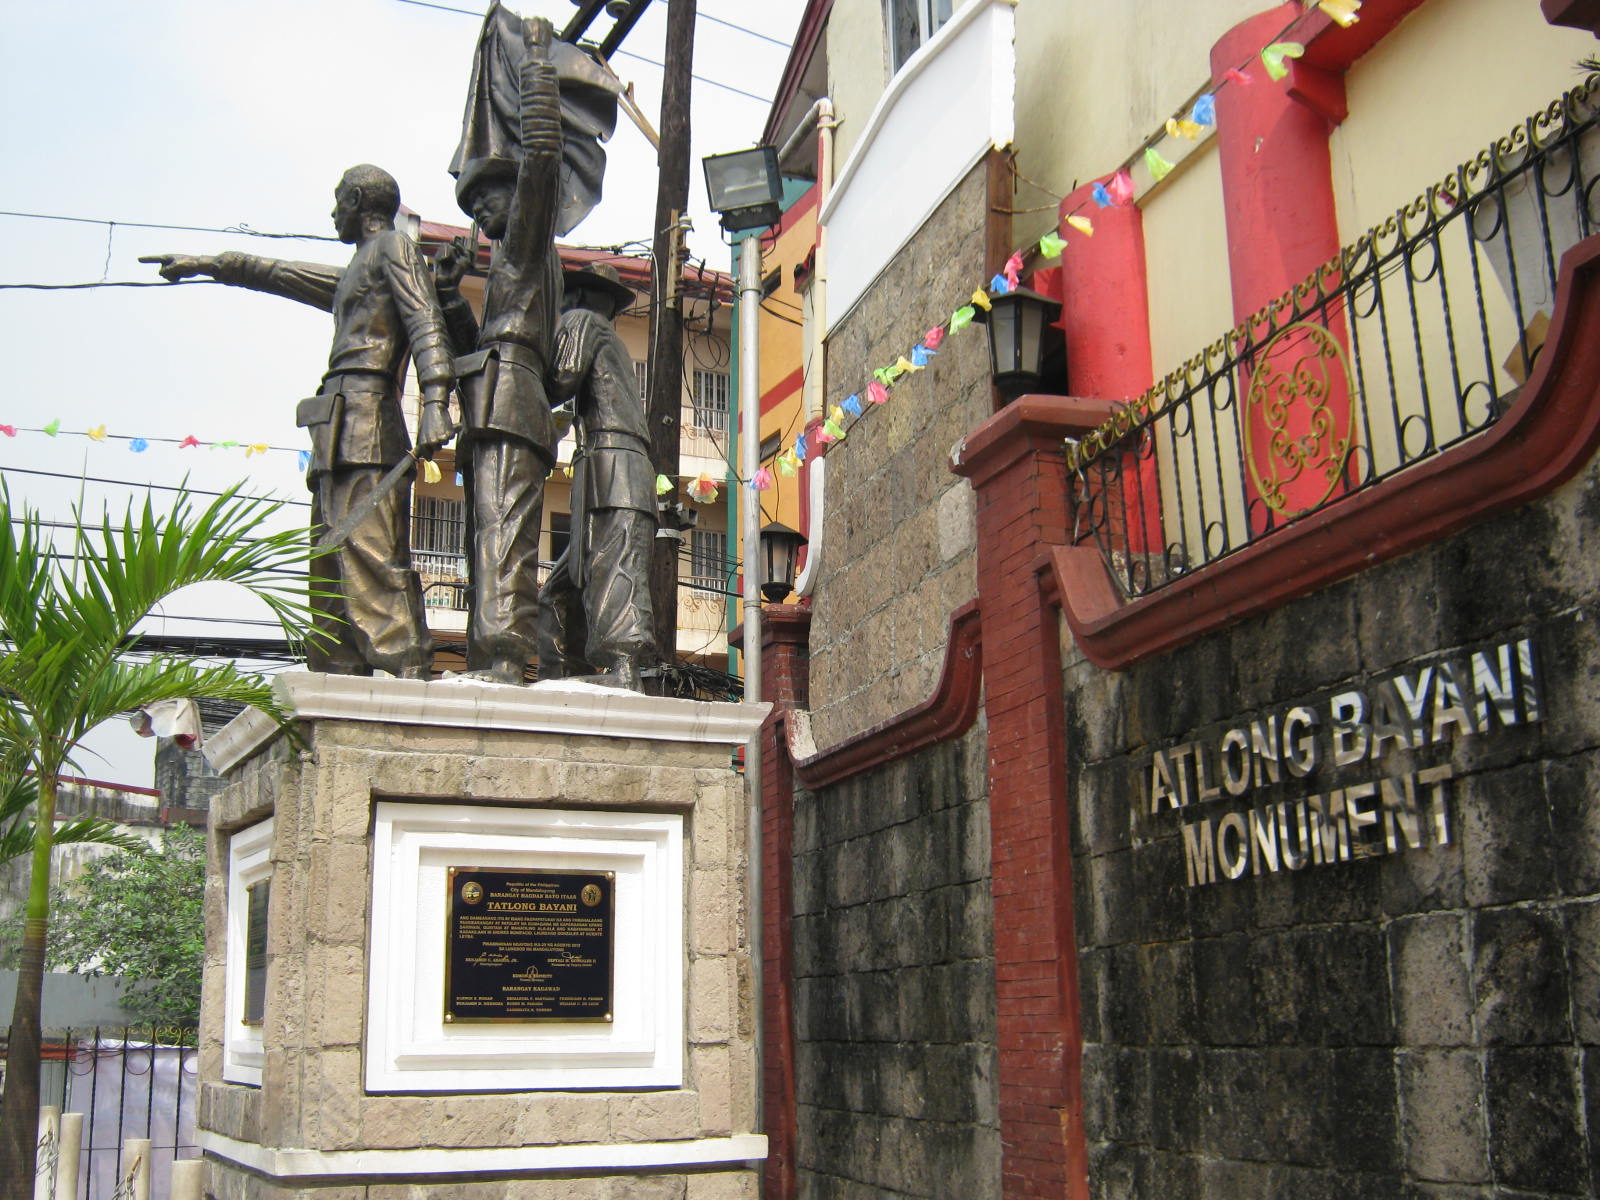 The Tatlong Bayani monument of Bonifacio, Gen. Kalentong, and Laureano Gonzales in Hagdang Bato (photo courtesy of Wazzup Pilipinas)